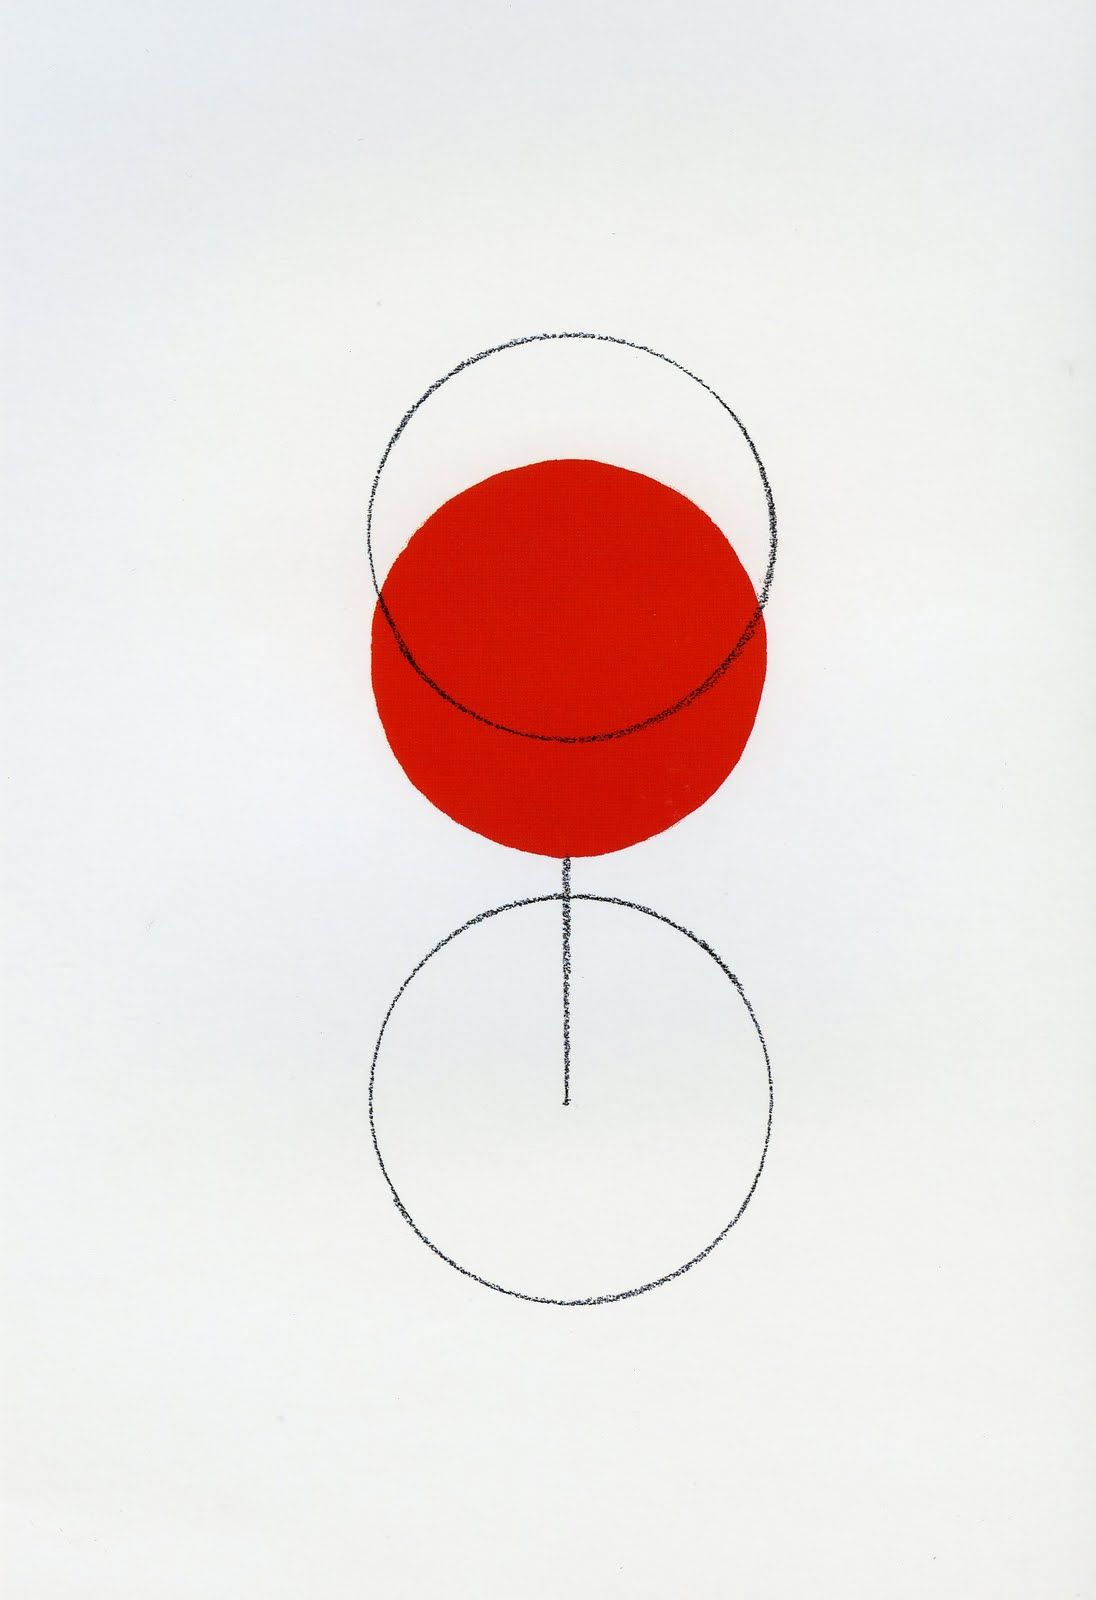 Alan Fletcher (he loves simple and colourful, especially his signature red circle) This is such a smart piece of design - simple but goes beyond one's imagination. [Uyen N.]  2 blank circles, one red circle, and a straight line, create the illusion of what appears to be a glass of wine. http://www.lhup.edu/~dsimanek/3d/illus1.htm